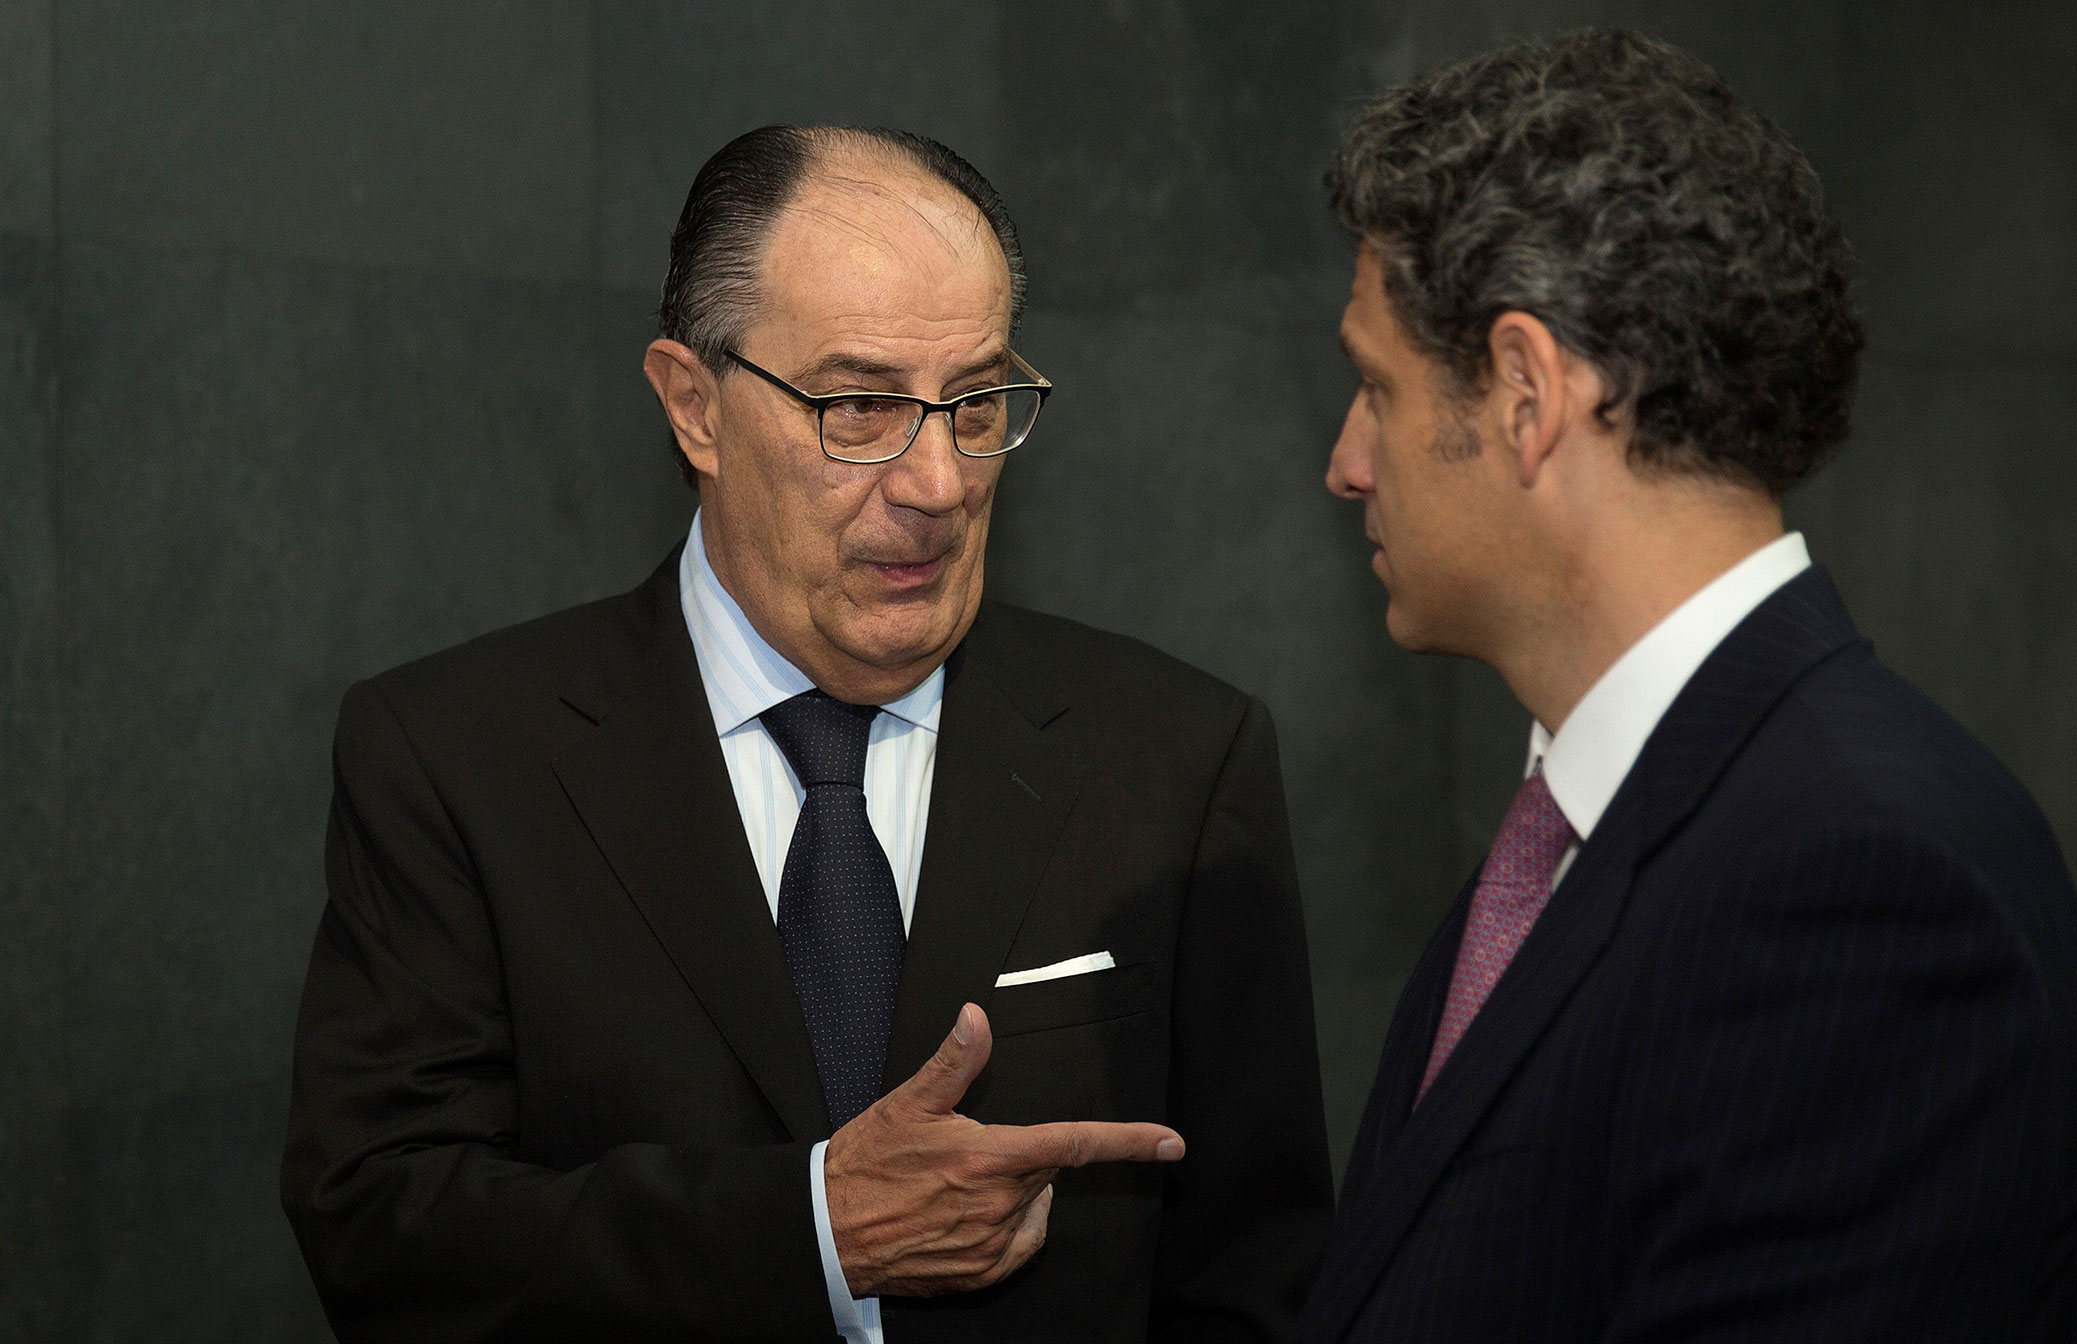 Jaime Ruiz Sacristan, center, speaks with Francisco del Valle Perochena, chairman of Elementia SA, during the opening bell ceremony at the Bolsa Mexicana de Valores in Mexico City, Mexico, July 23, 2015.